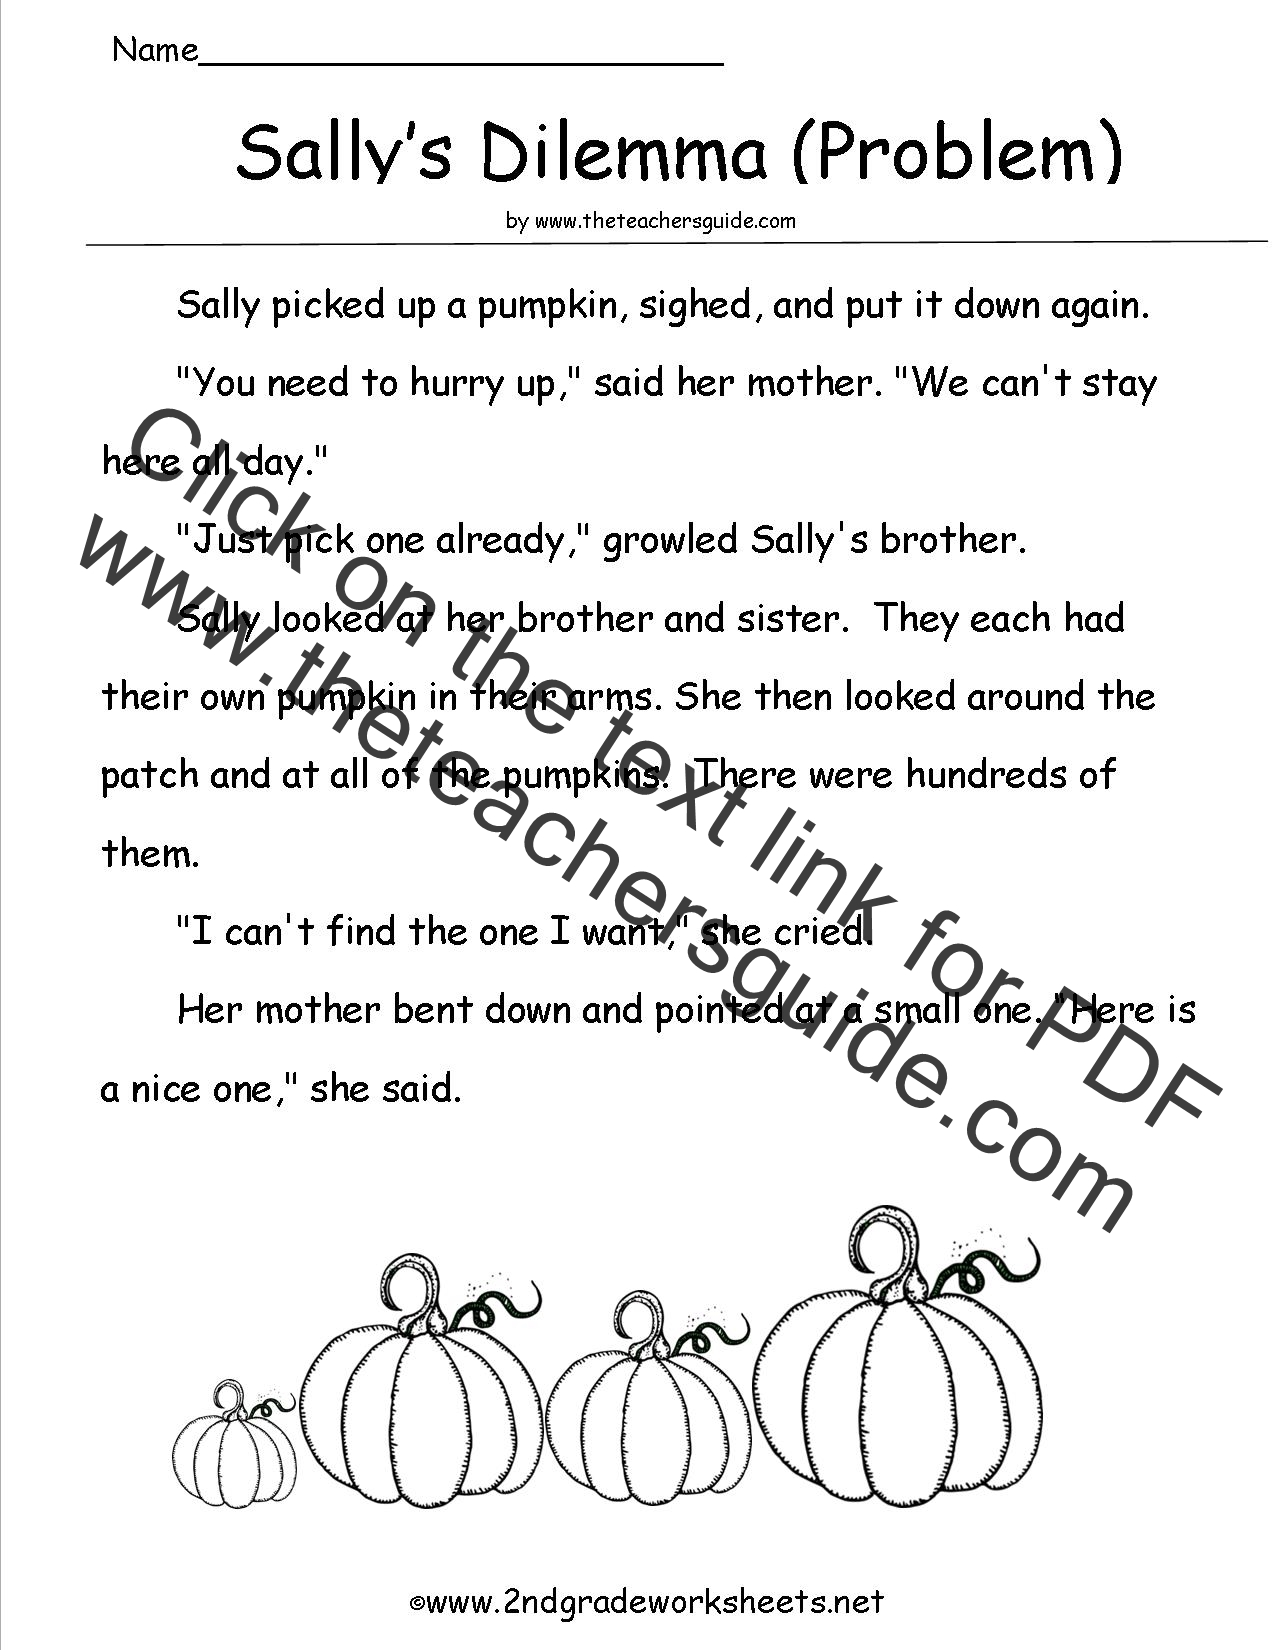 Worksheets Halloween Worksheets Printable halloween worksheets and printouts pumpkin comprehension paper